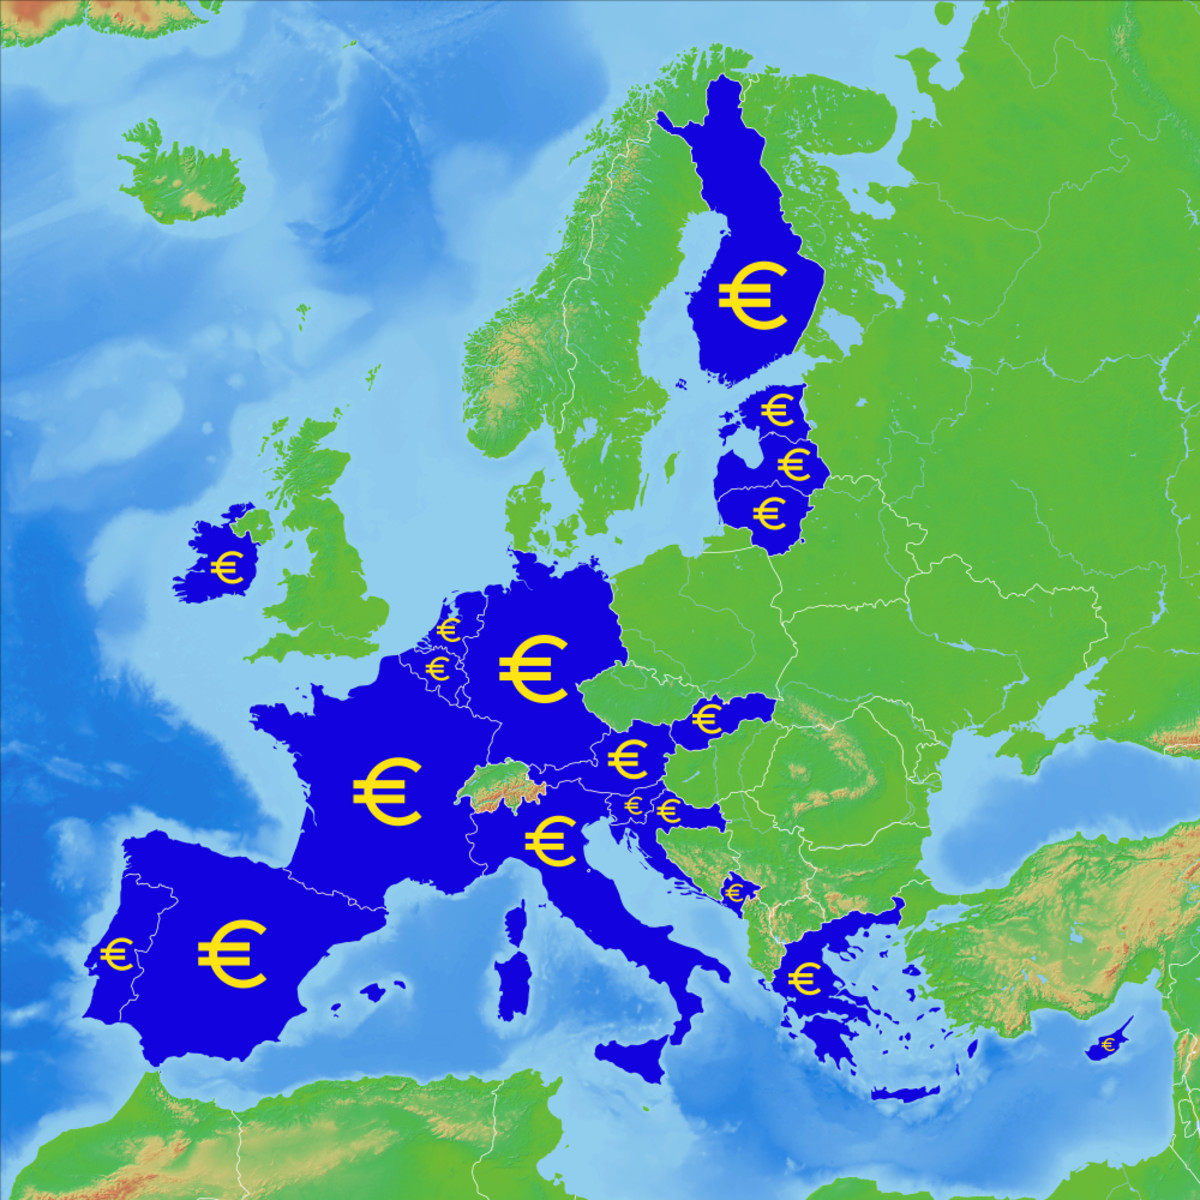 Not each out of 28 member states is using Euro as currency